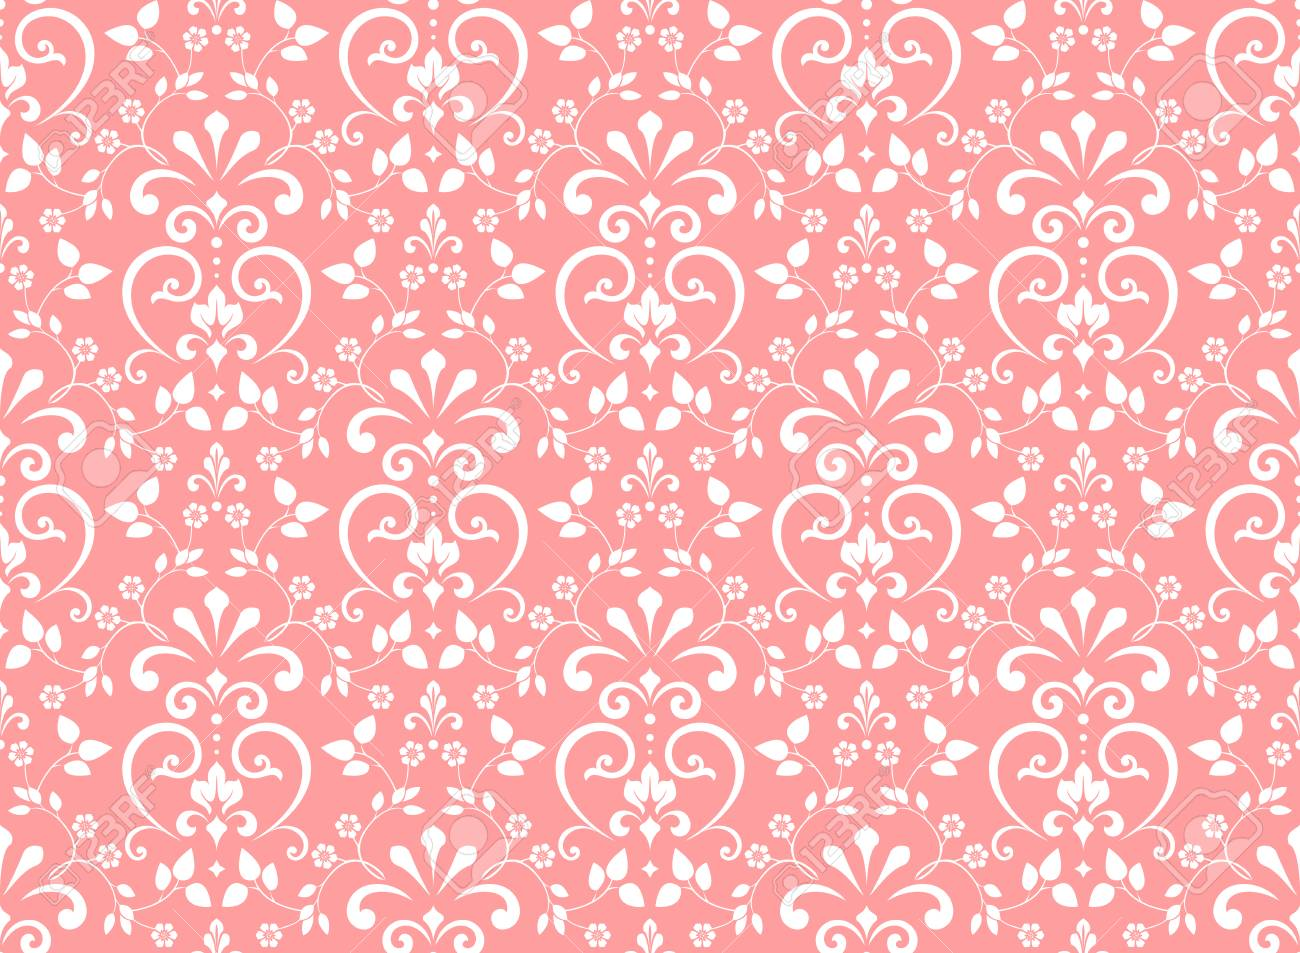 Floral Pattern Vintage Wallpaper In The Baroque Style Seamless Vector Background White And Pink Ornament For Fabric Wallpaper Packaging Ornate